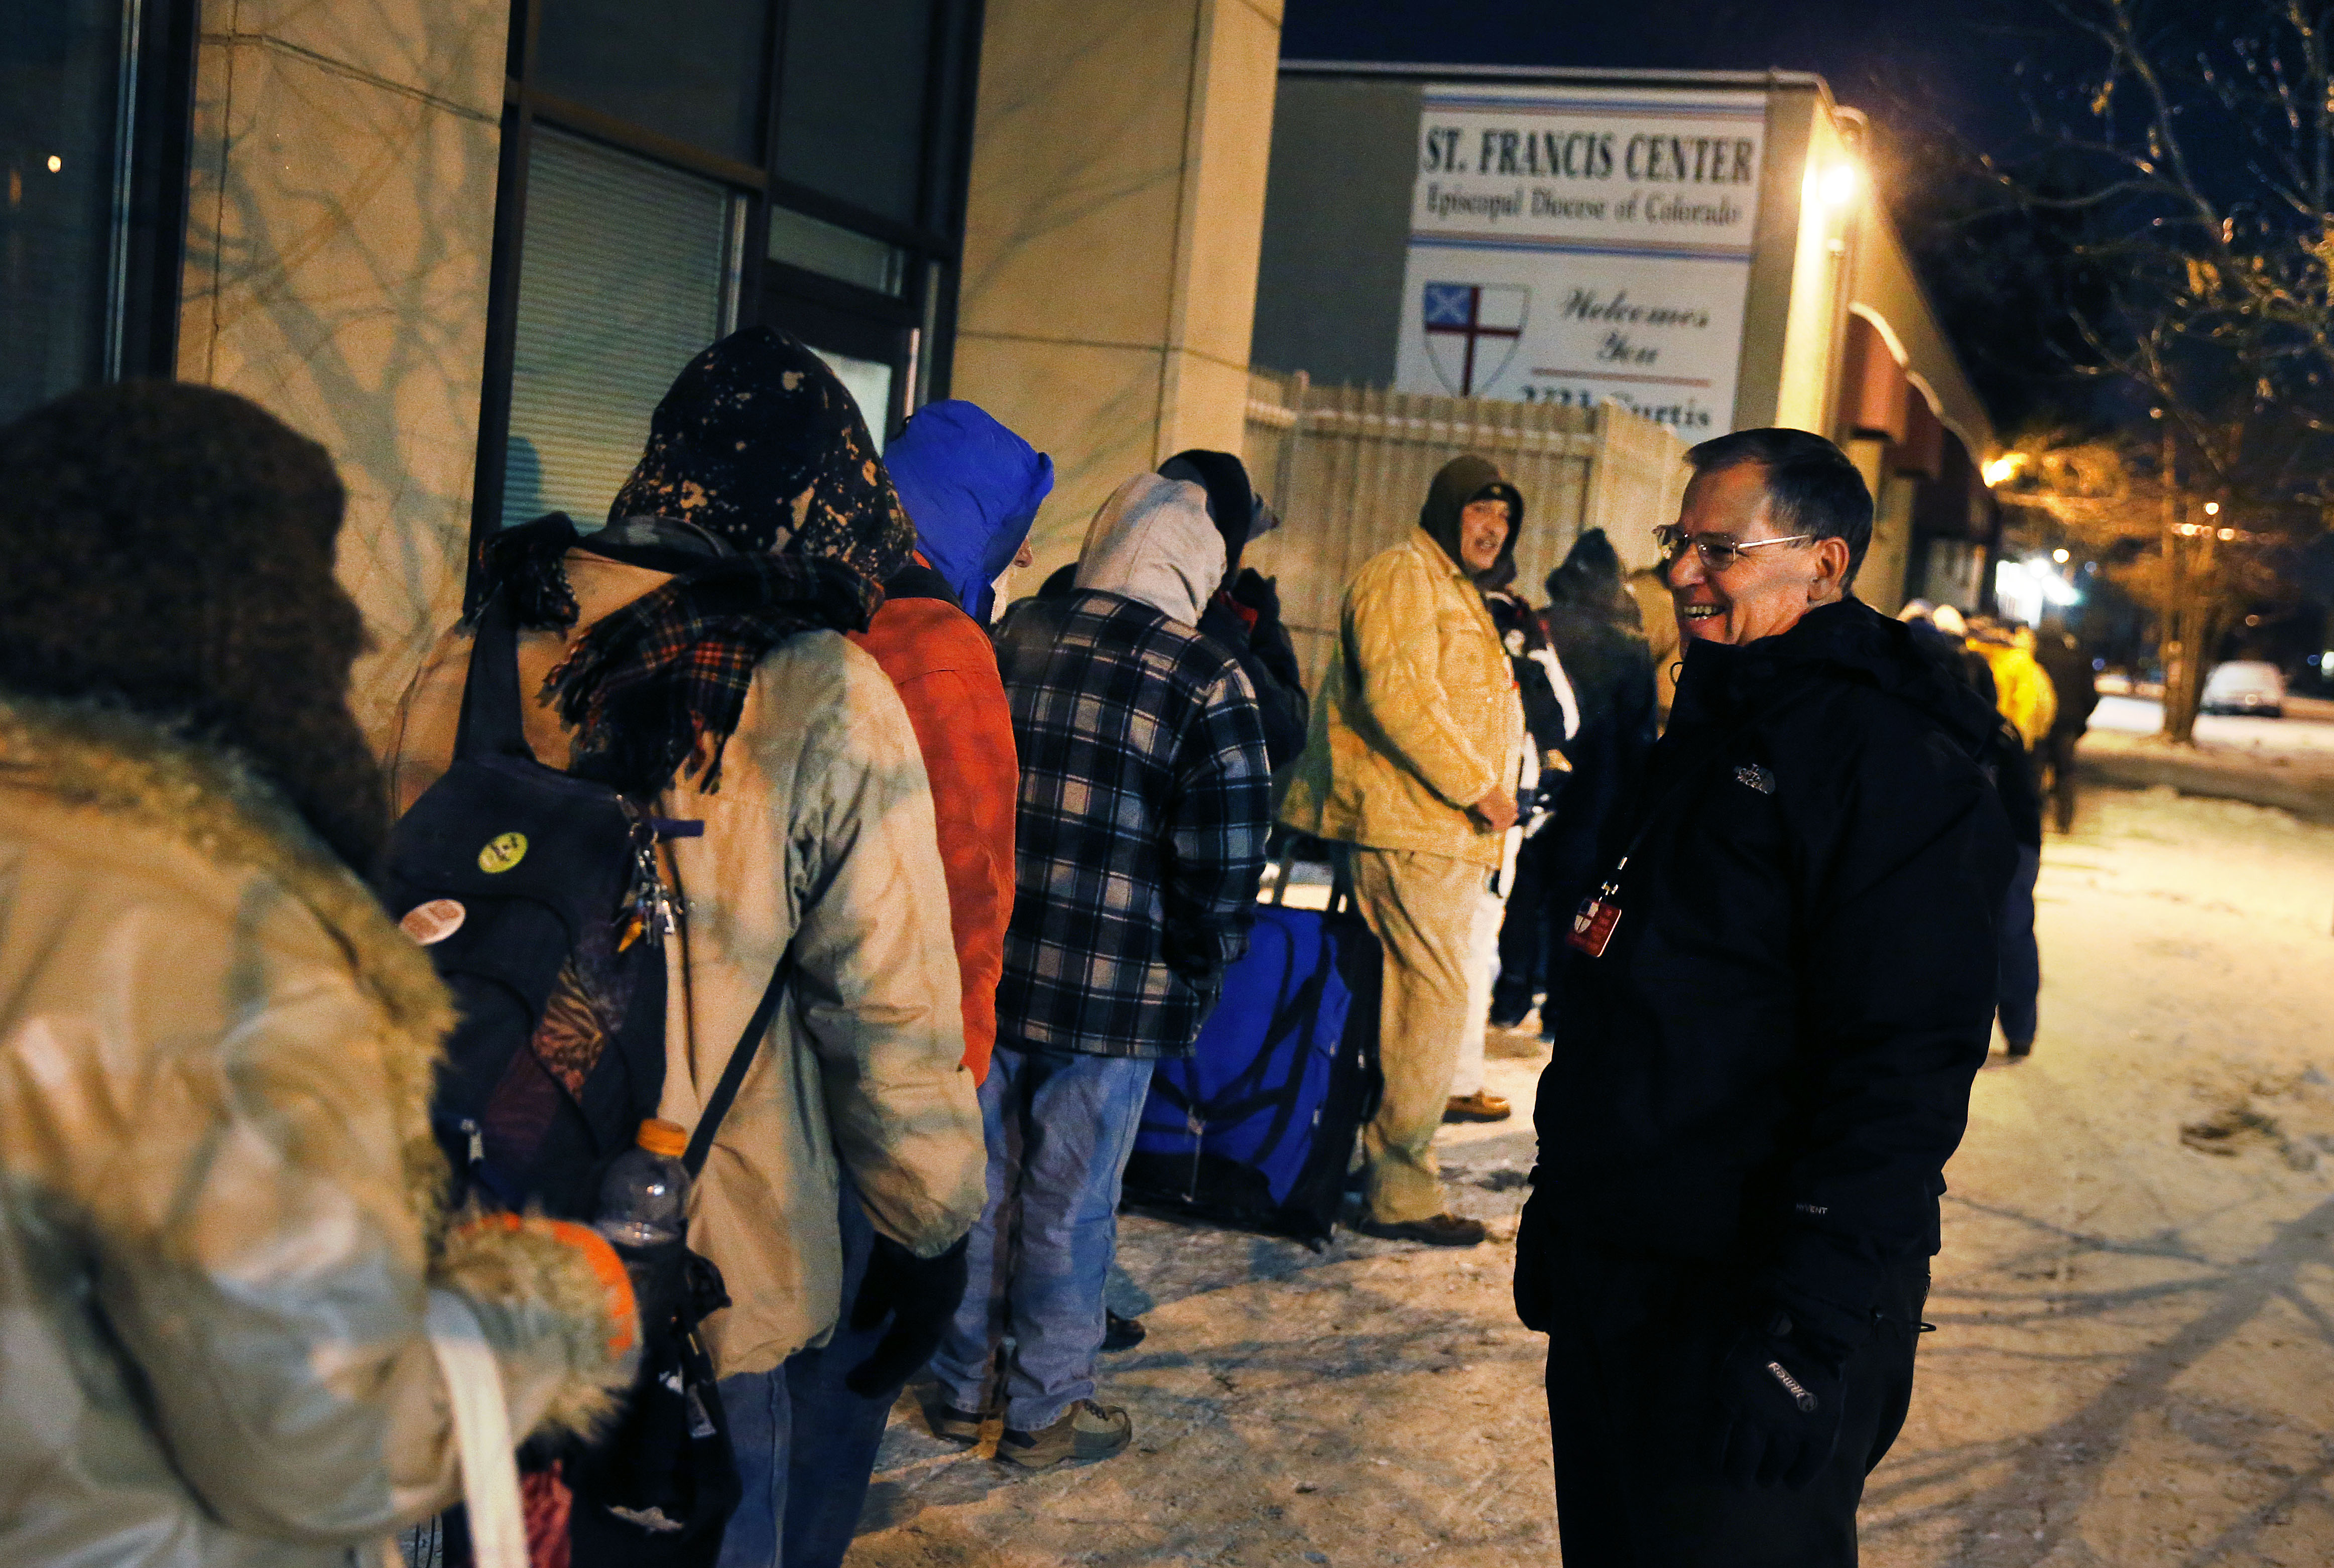 <p>In this Dec. 5, 2013 file photo, Tom Tuning, right, greets homeless men who wait for the opening of the St. Francis Center's day shelter, where Tuning works, in downtown Denver.</p>